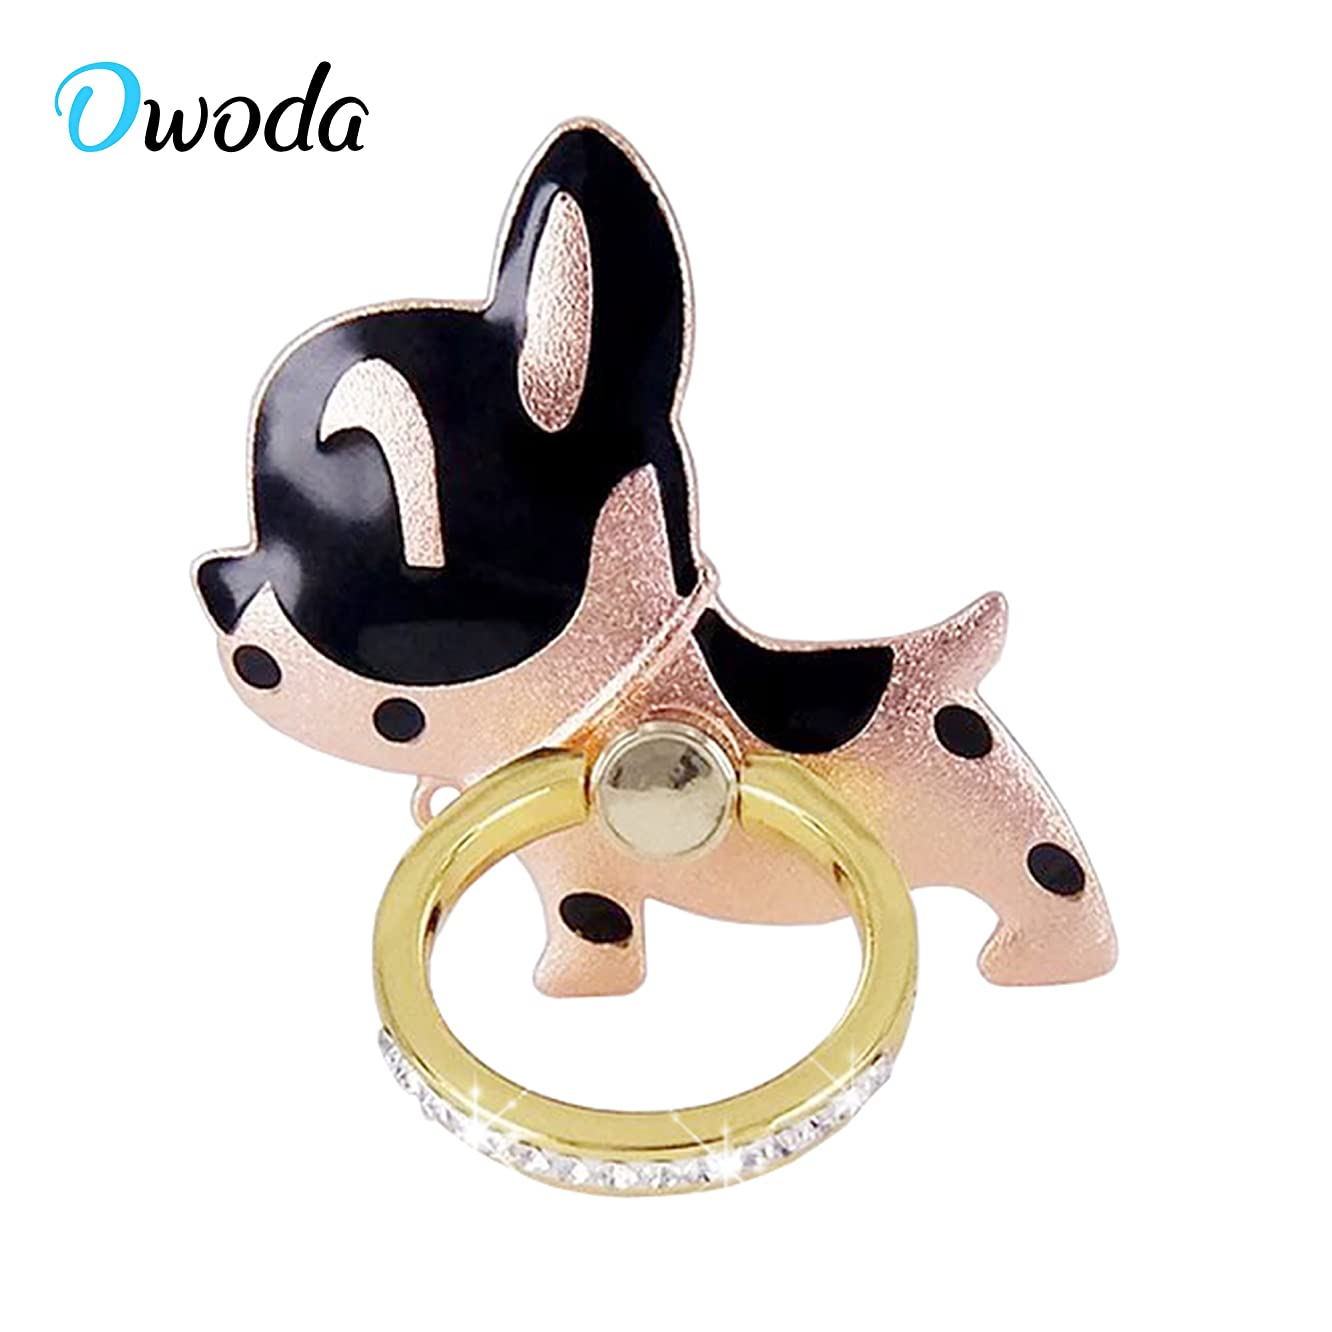 O'woda Cute Pet Phone Ring Stand 360 Degree Rotating Dog Cat Ring Grip Anti Drop Finger Holder for iPhone iPad and All Cellphone (Dog- Rose Black)